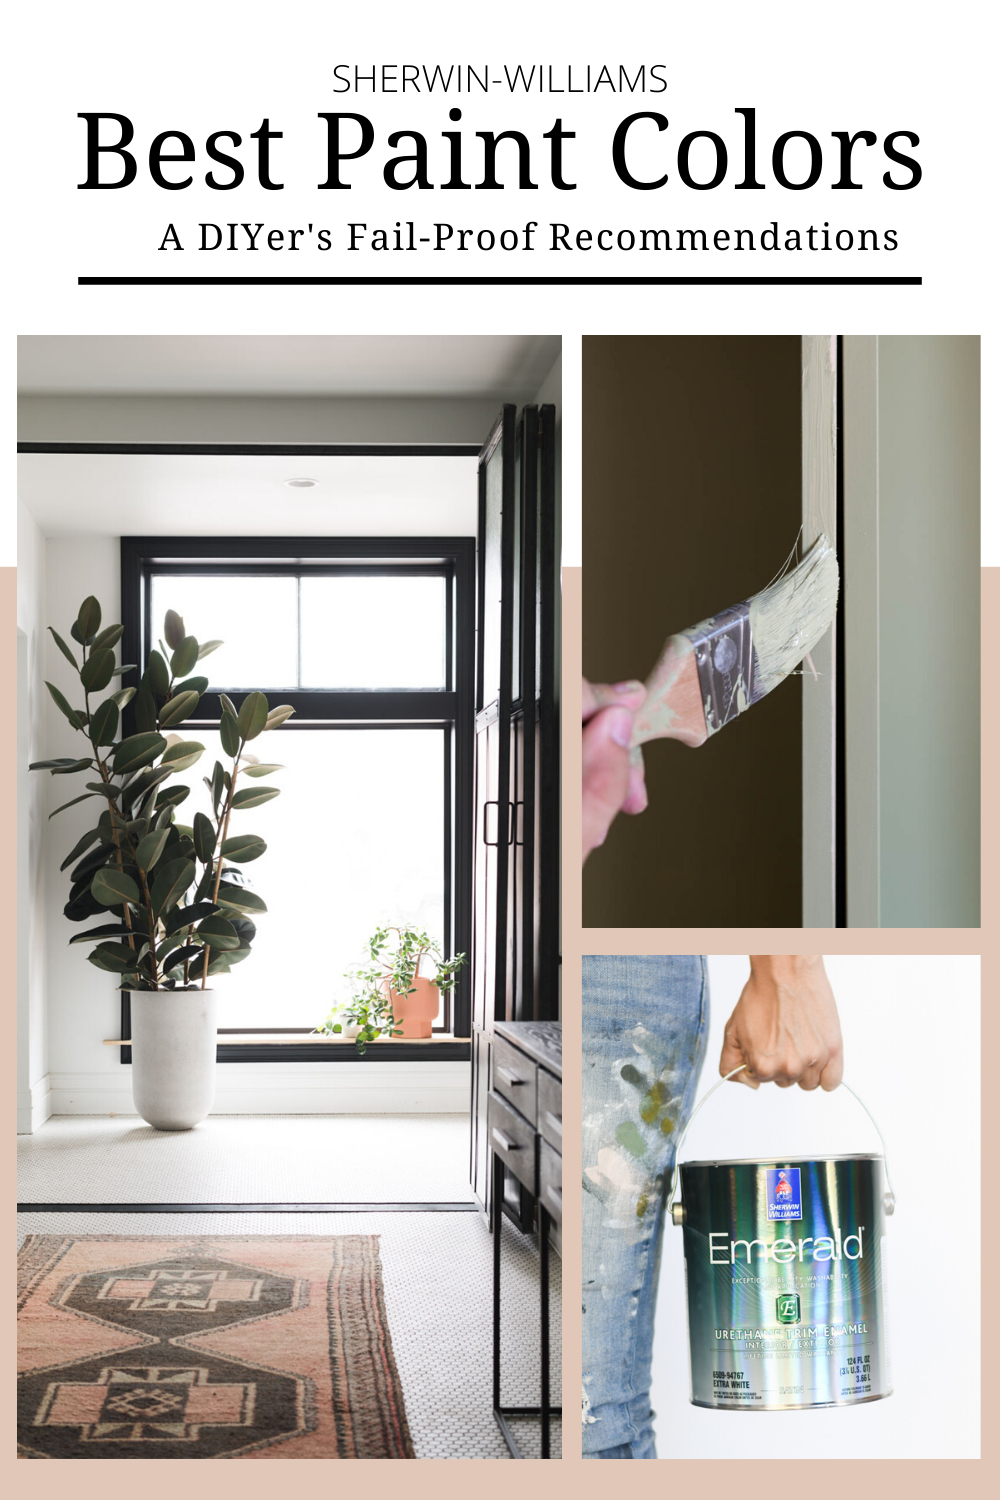 My Ultimate Guide To Paint Colors Exclusive Sherwin Williams Coupon Code Vintage Revivals